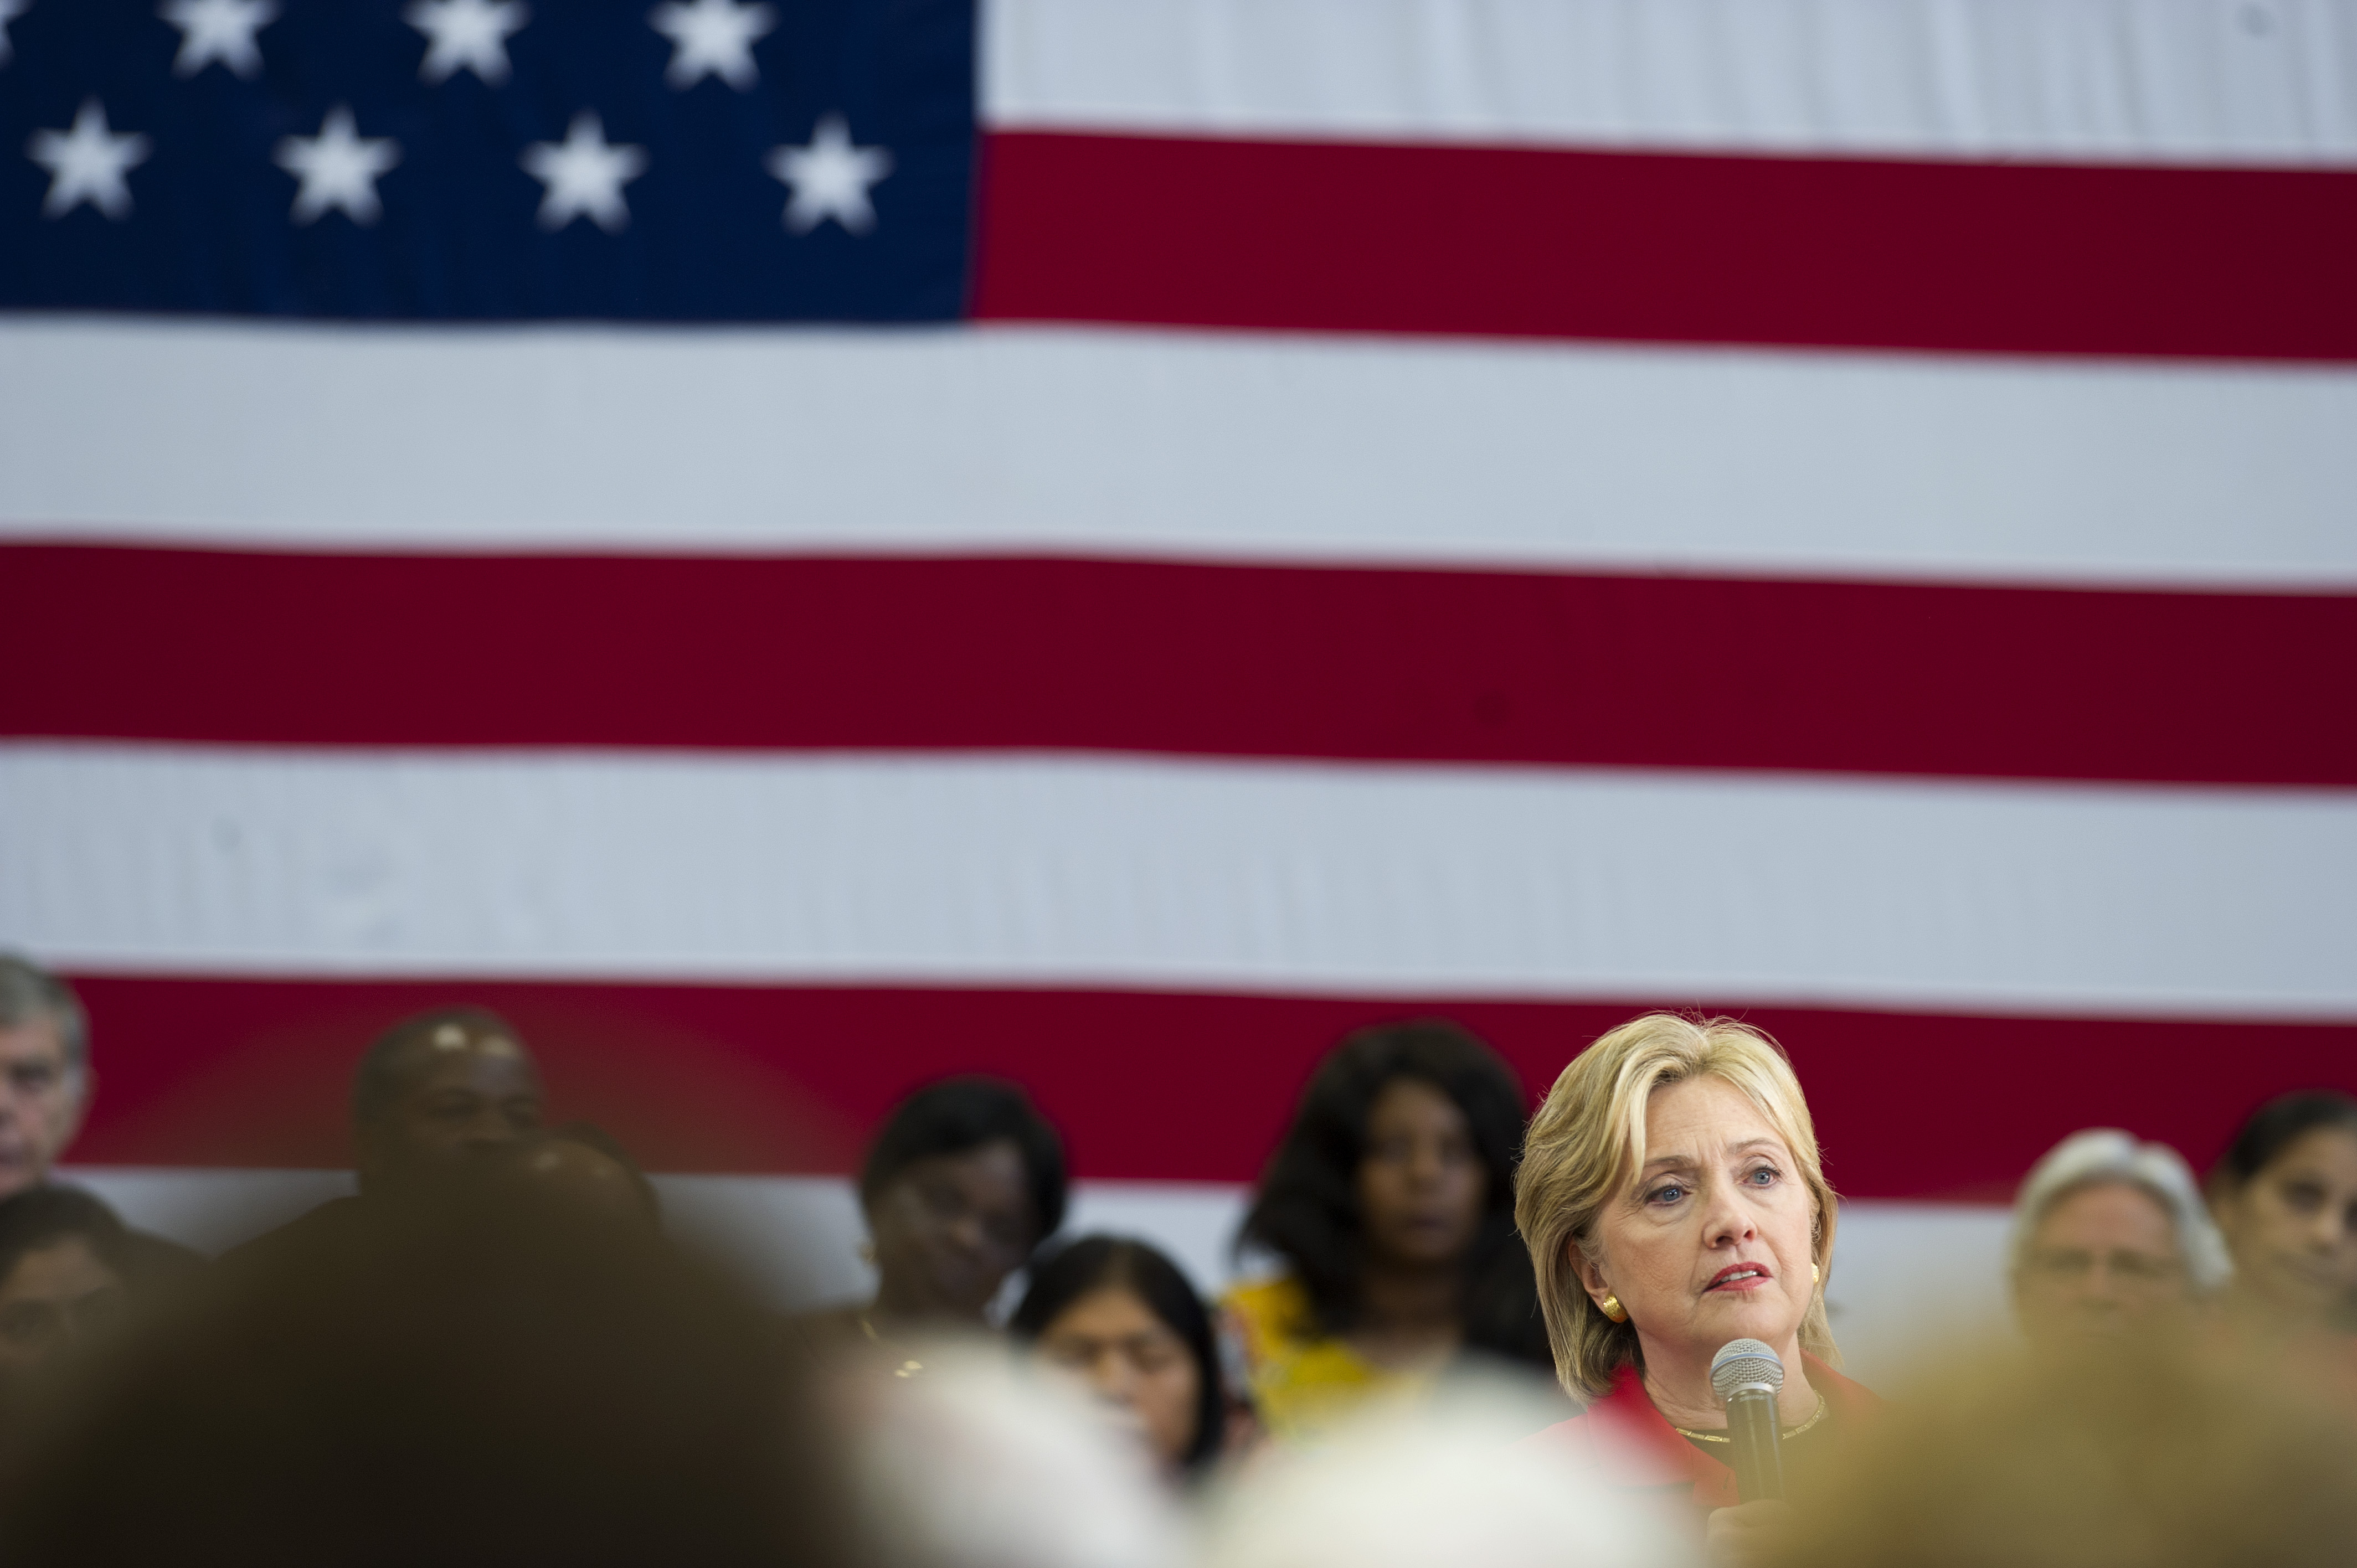 Hillary Clinton holds a town hall meeting at the Manchester Community College on Oct. 5, 2015 in Manchester, NH.